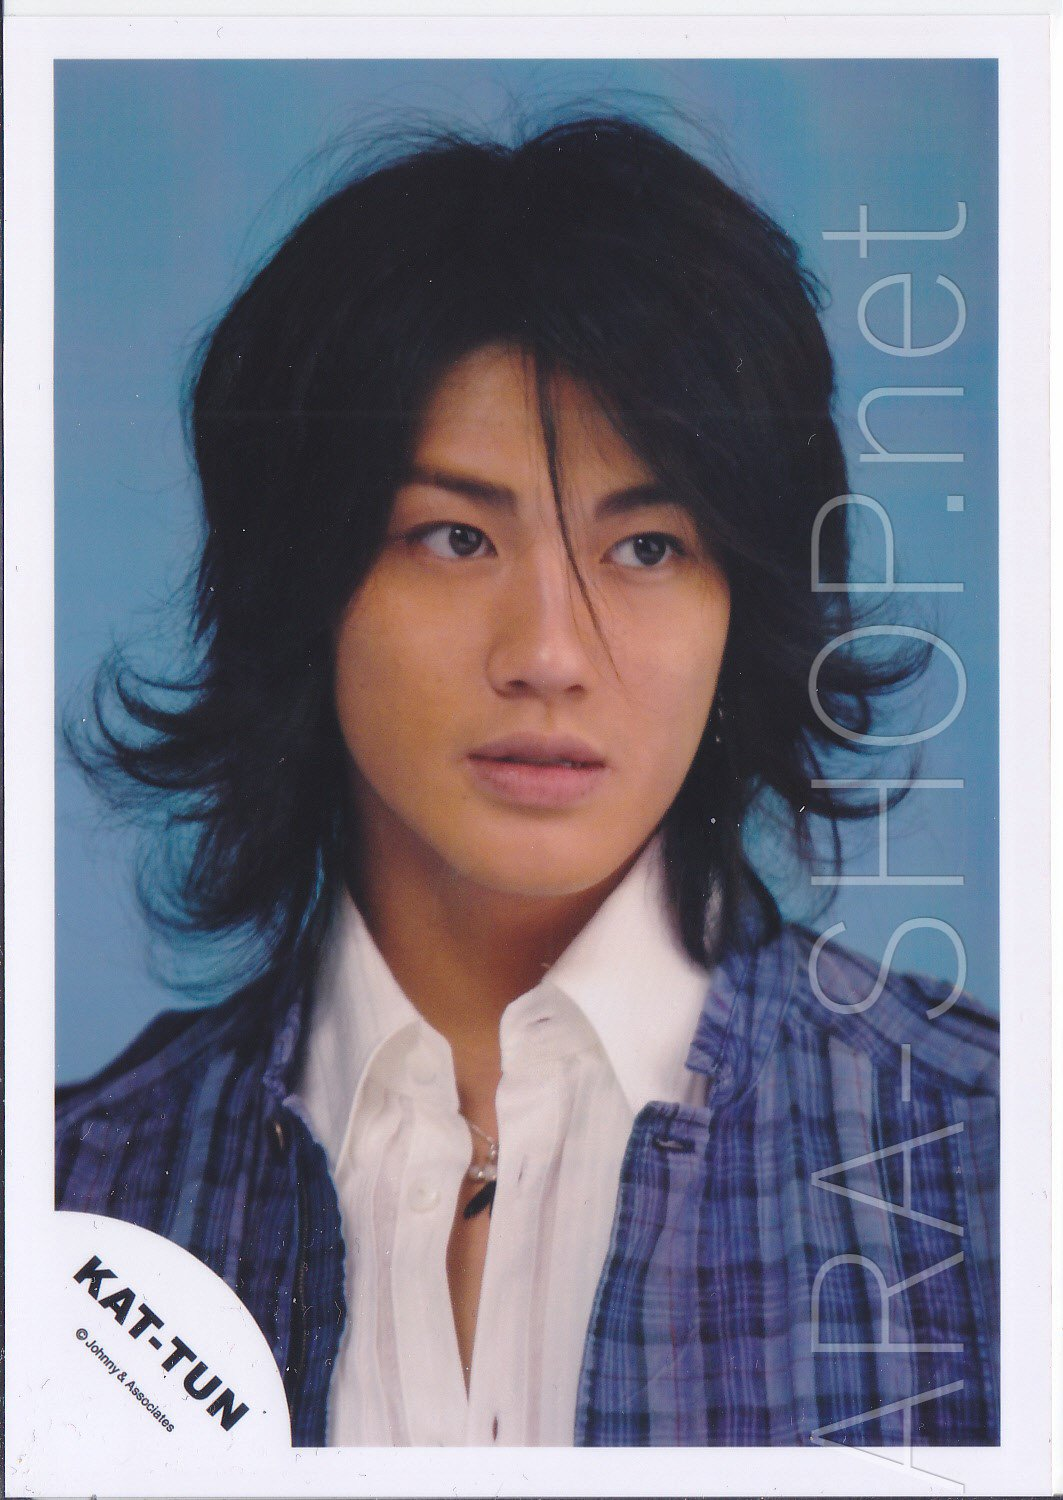 KAT-TUN - AKANISHI JIN - Johnny's Shop Photo #176